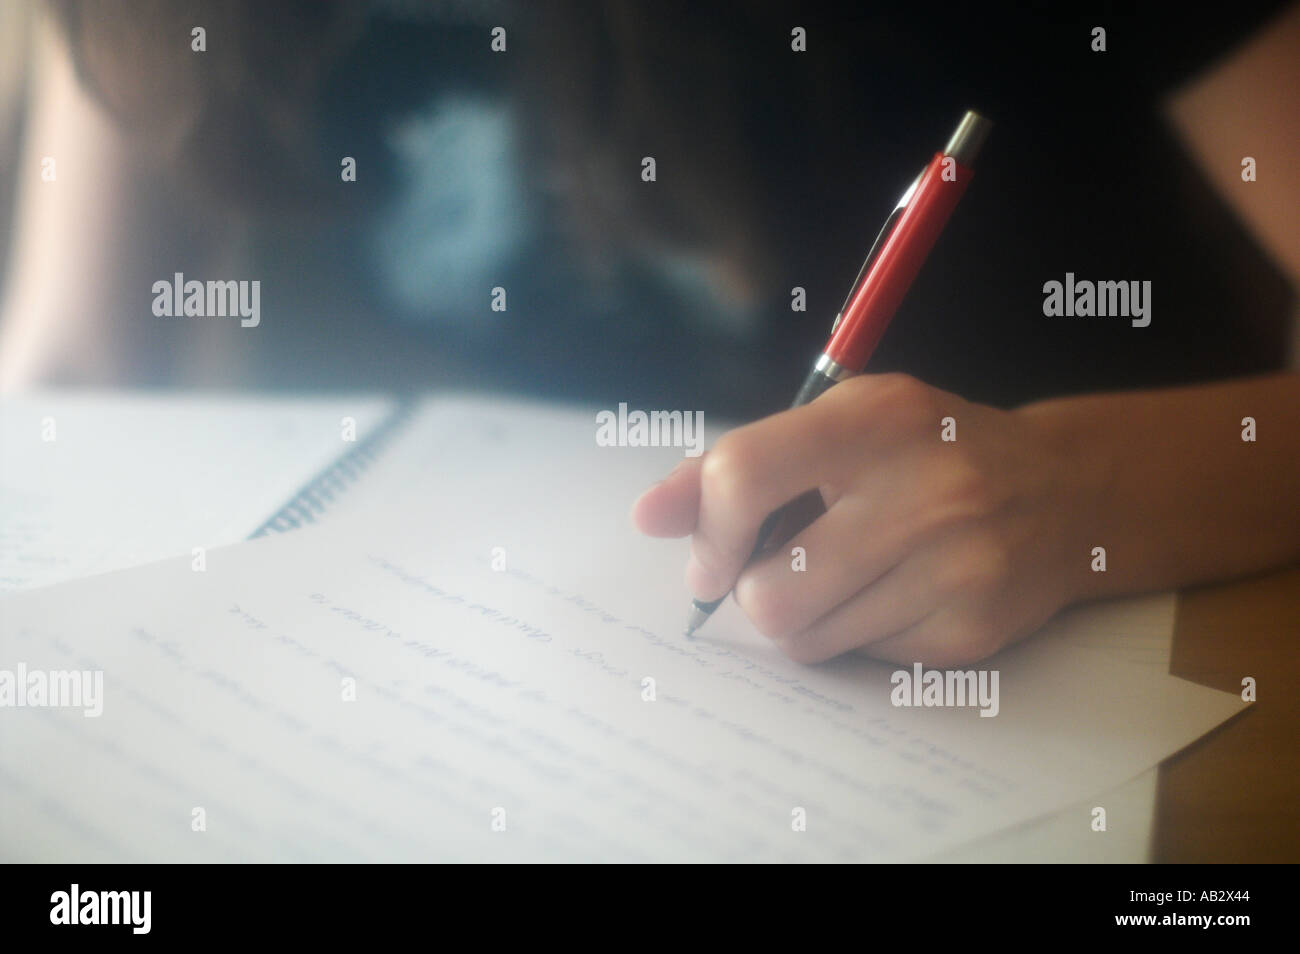 Writing A young left handed woman writing - Stock Image